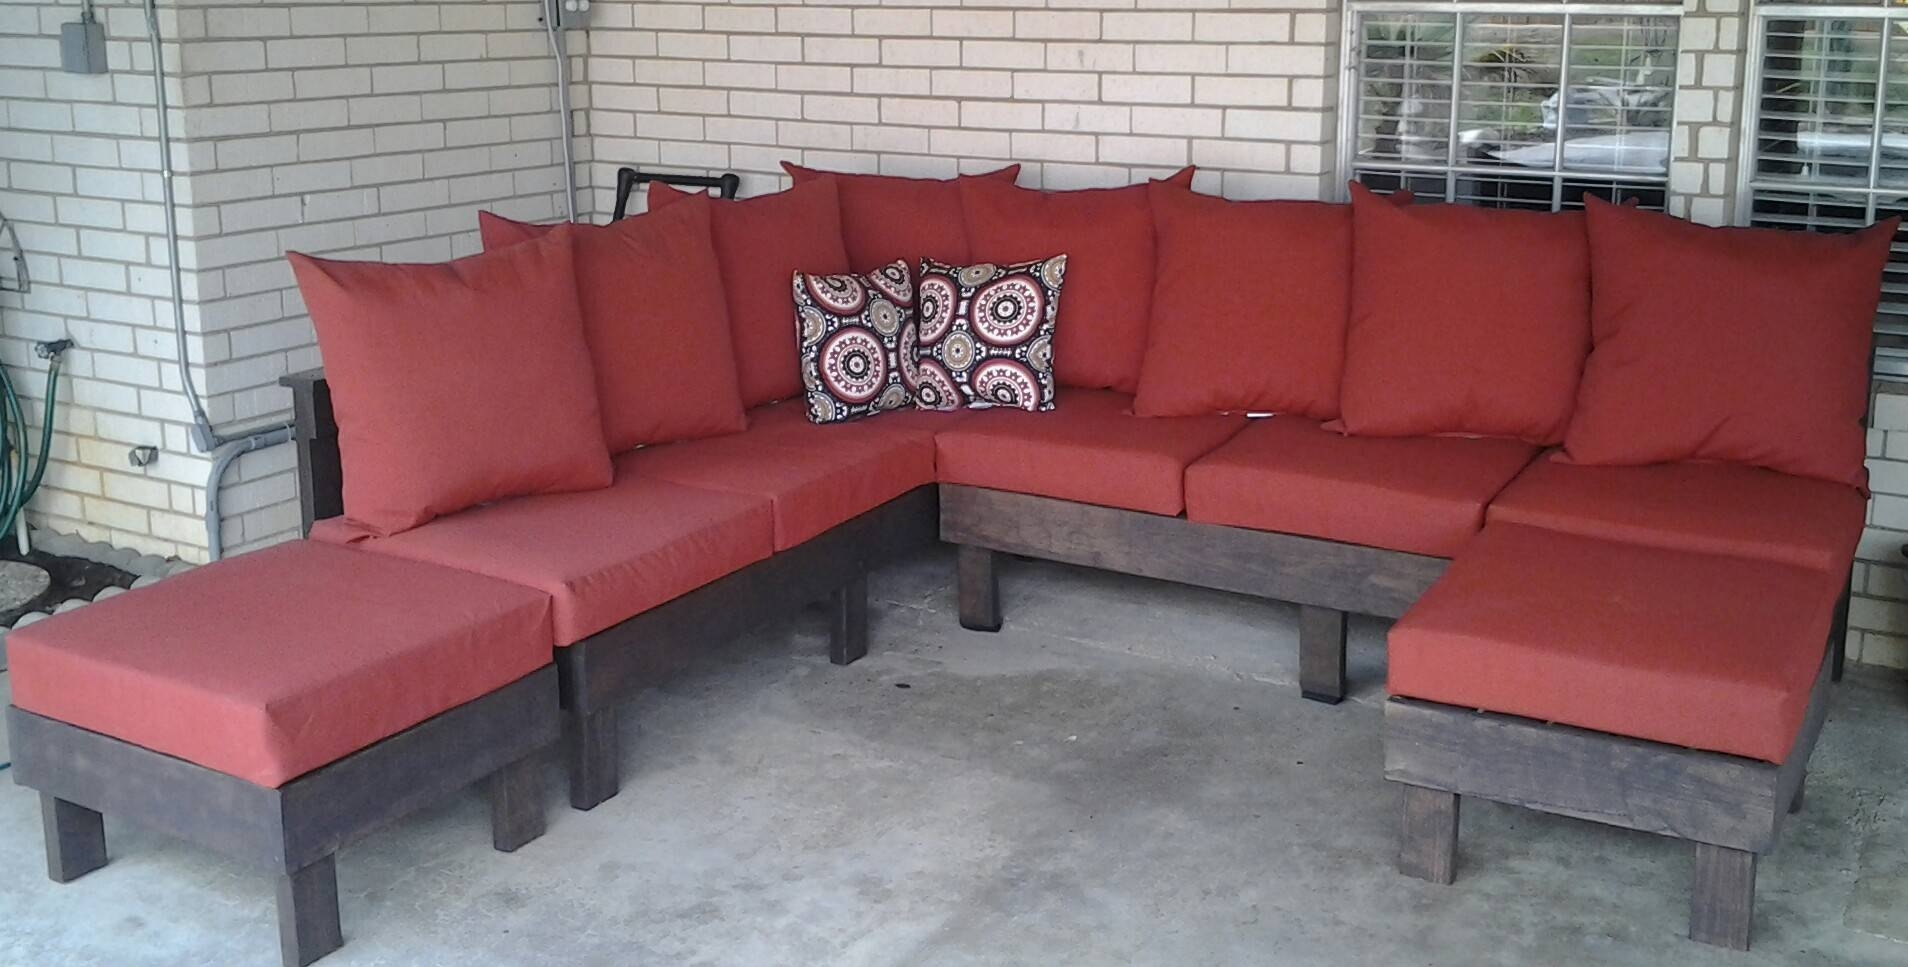 Ana White | Outdoor Sectional - Diy Projects inside Ana White Outdoor Sectional Sofas (Image 2 of 15)